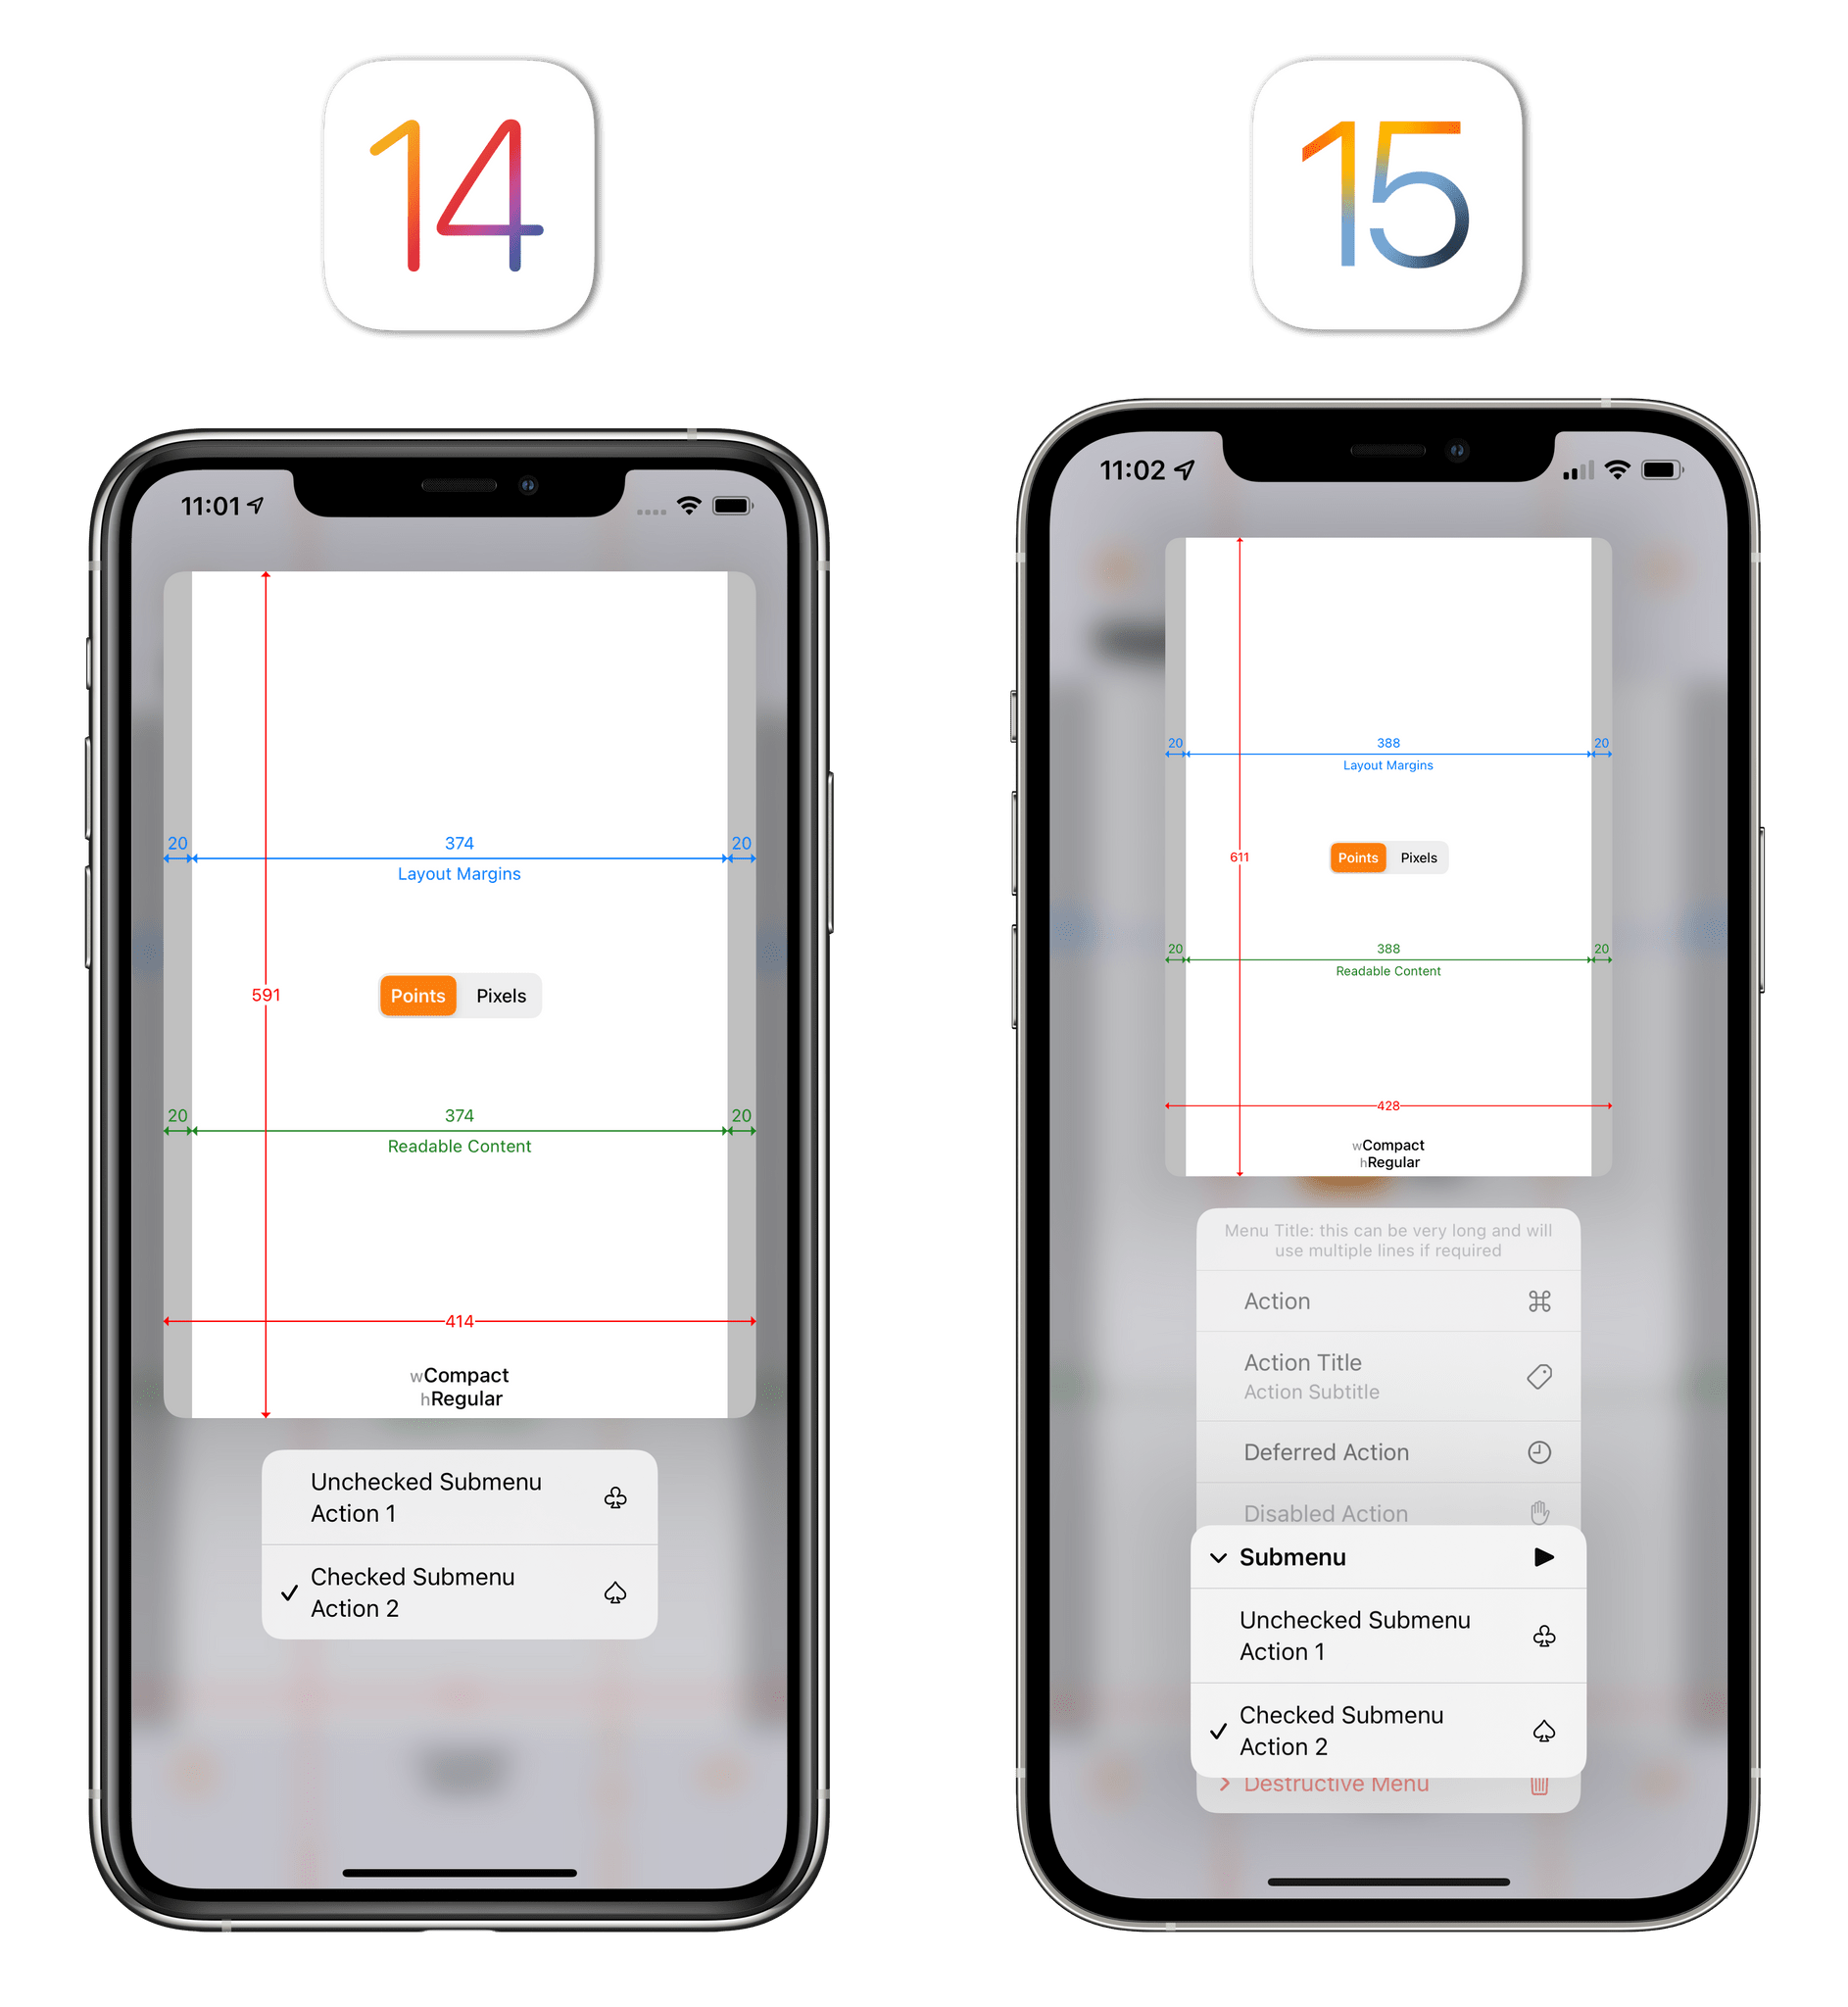 The new look for nested menus in iOS 15.